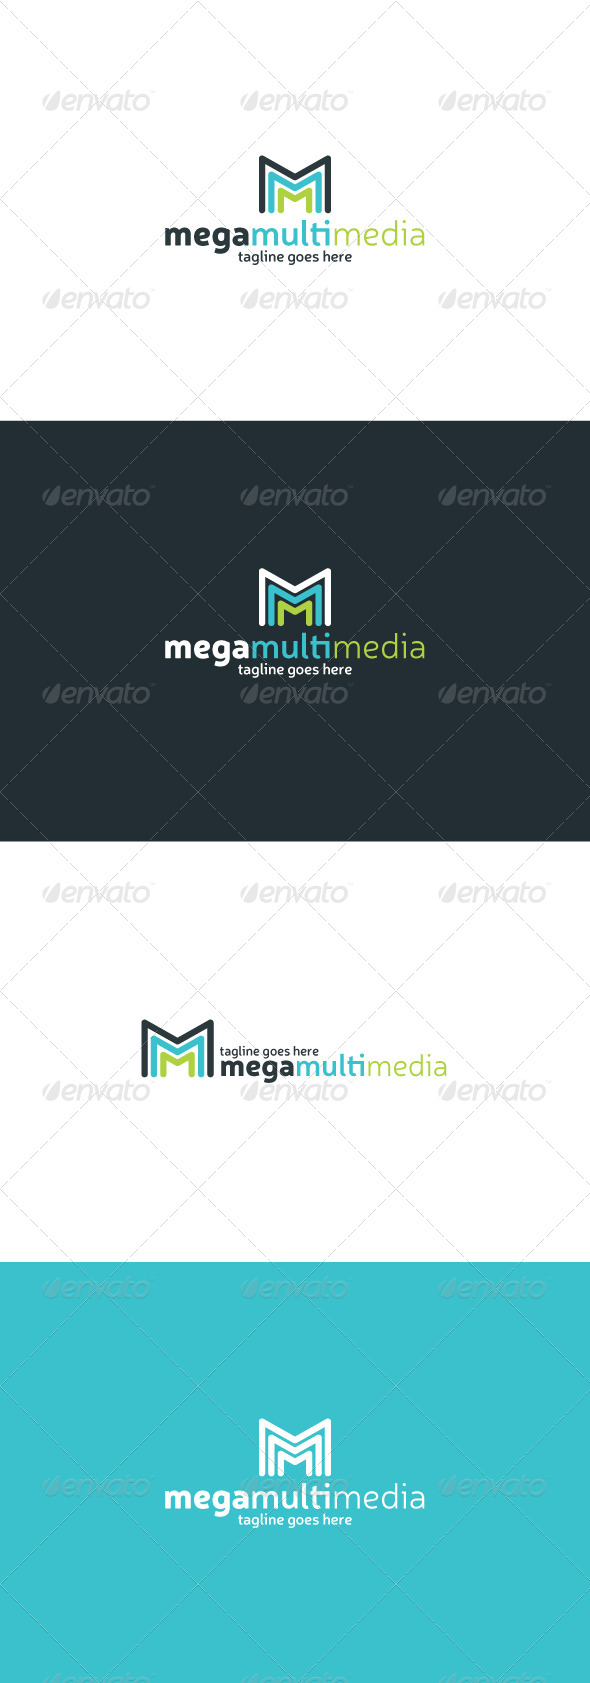 Mega Multi Media Logo Letter M